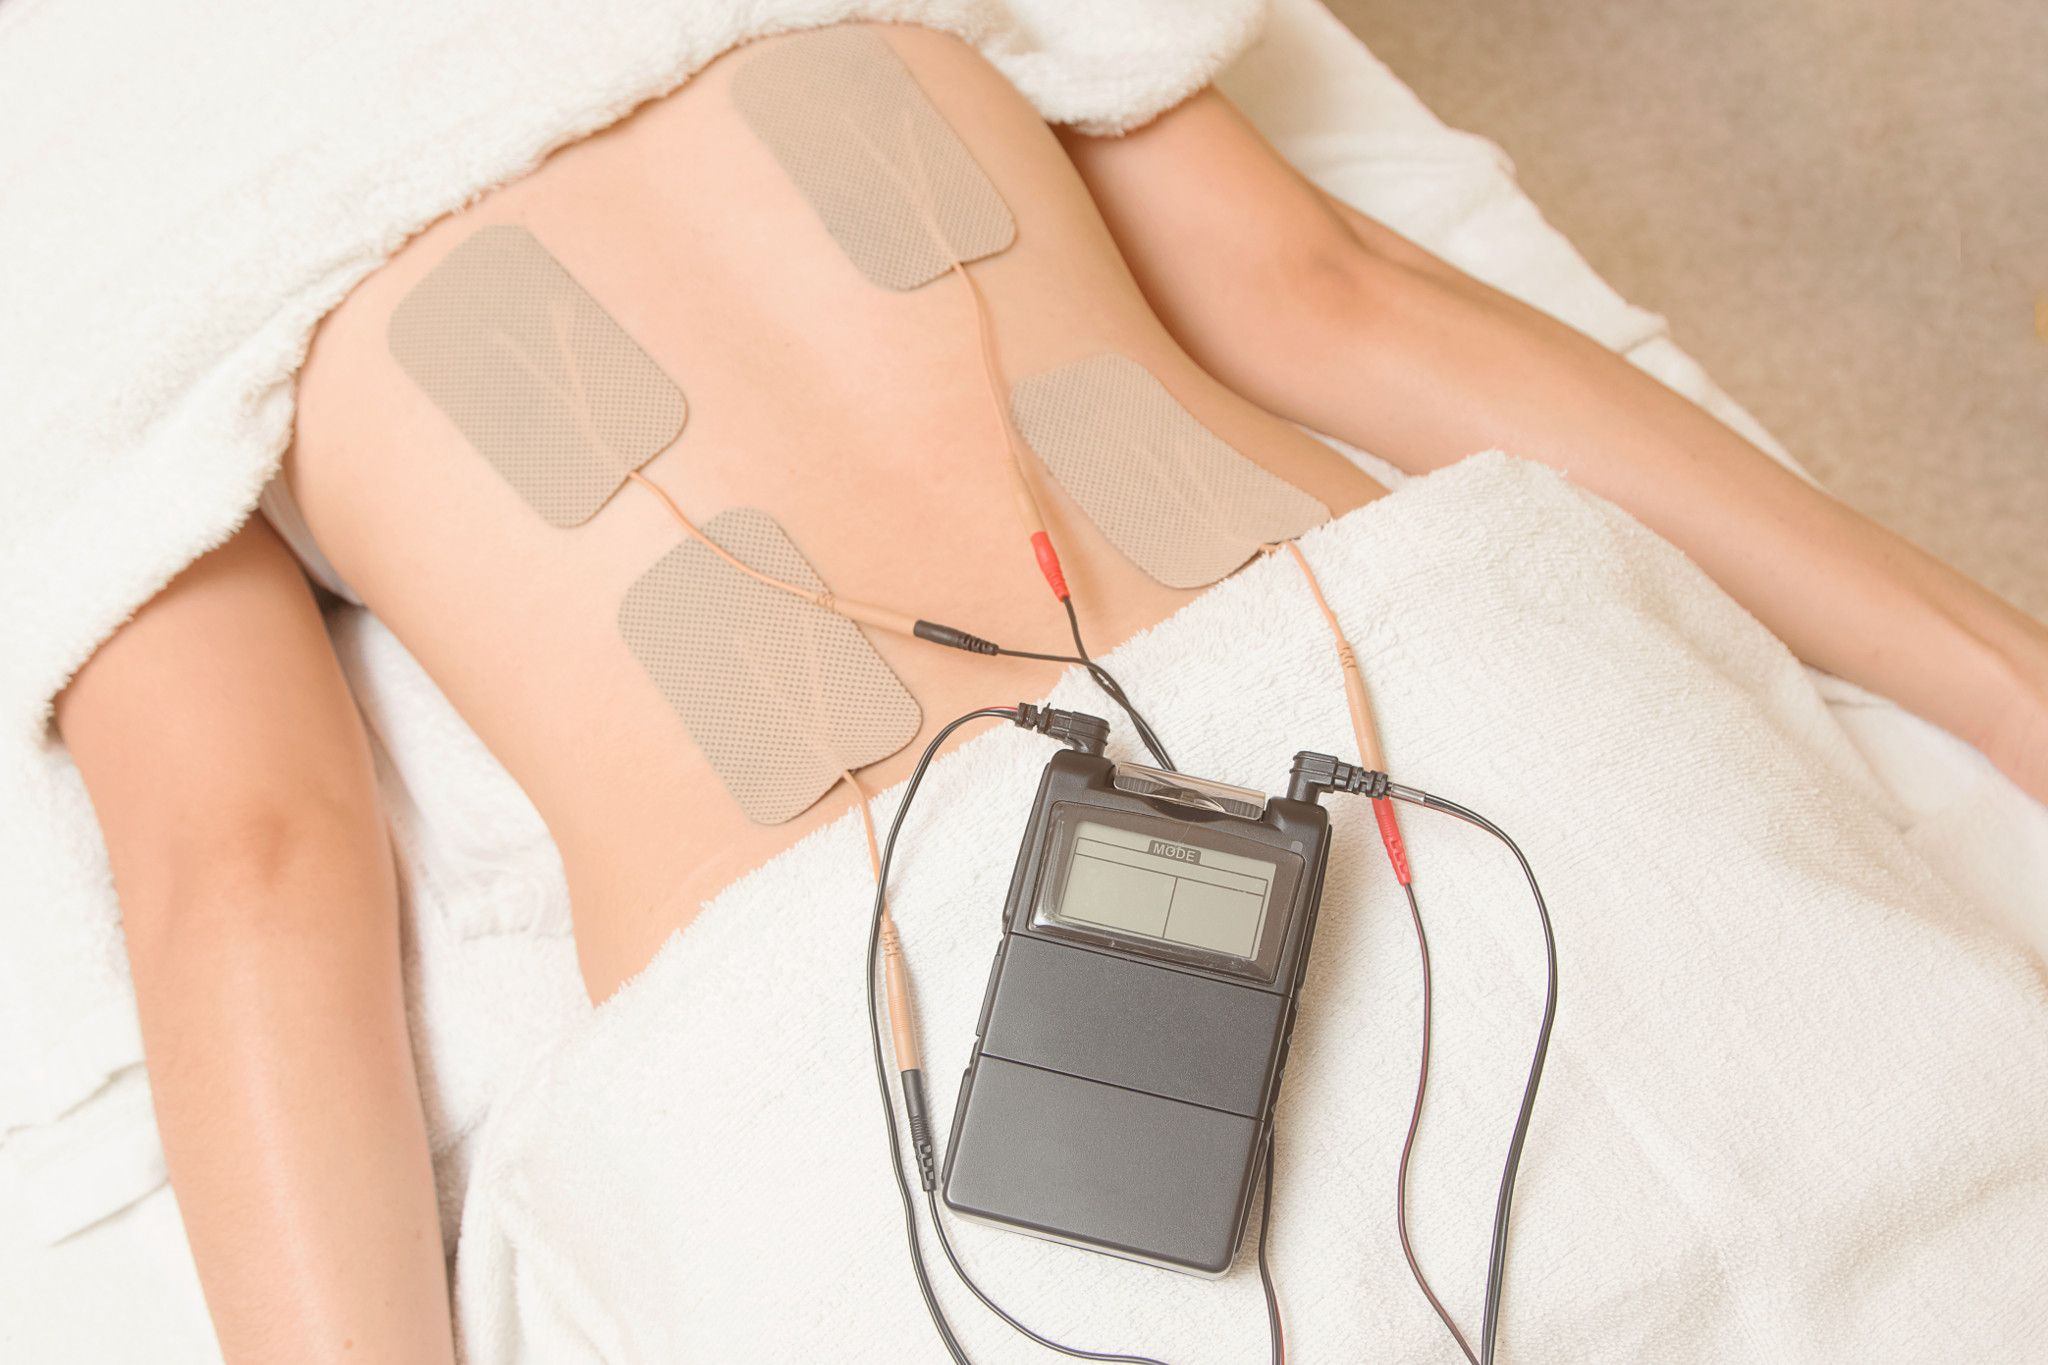 Tens unit being applied to the lower back.